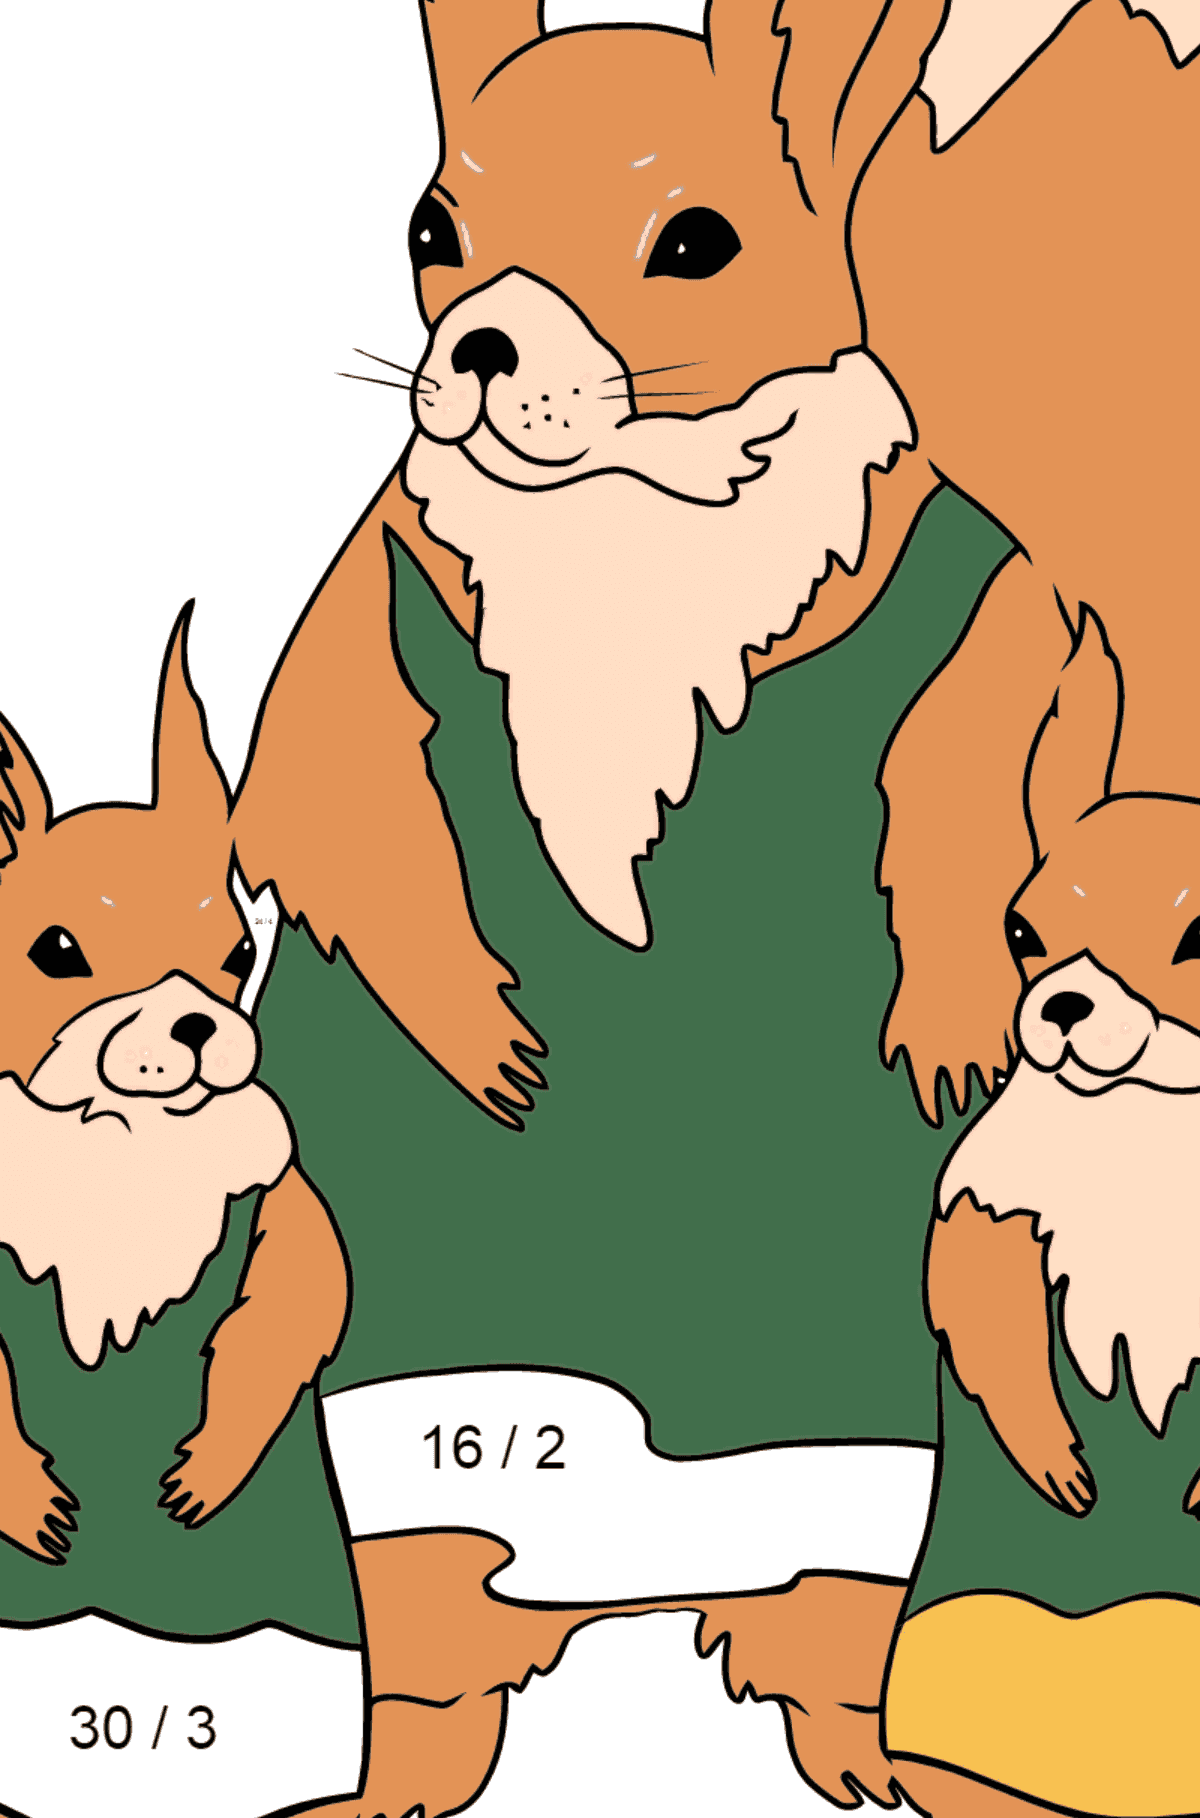 Spring Coloring Page - Squirrels are Preparing to Greet the Sun for Kids  - Color by Number Division